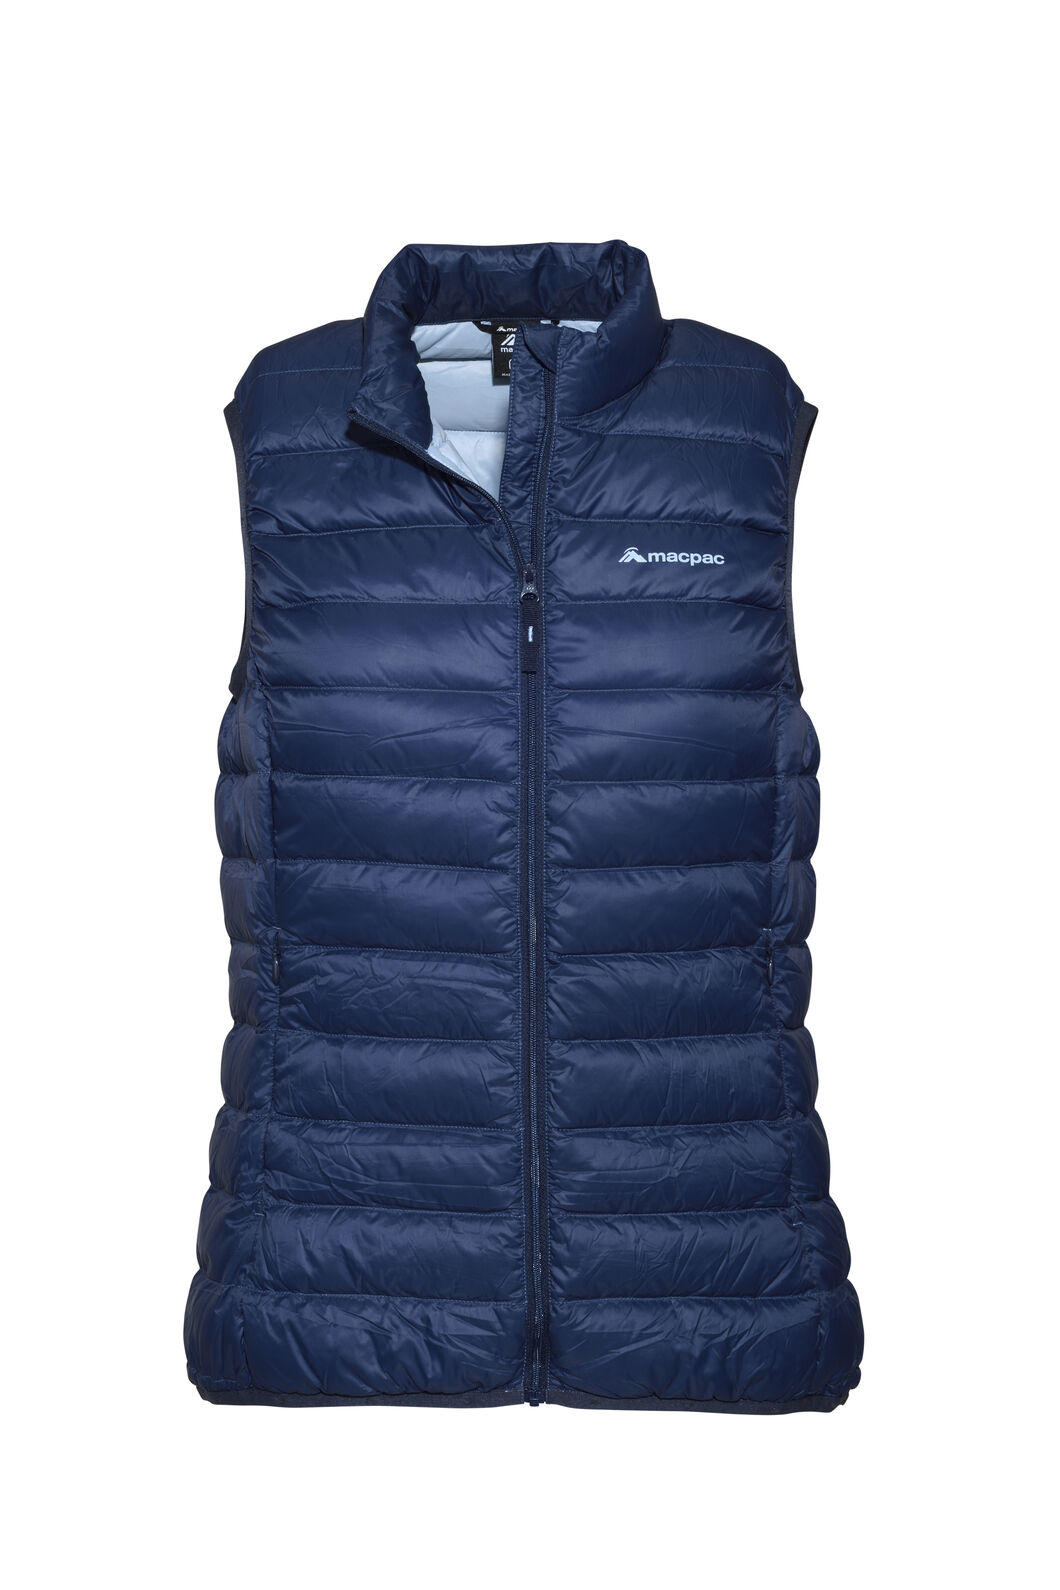 Macpac Uber Light Down Vest - Women's, Black Iris/Blue Fog, hi-res